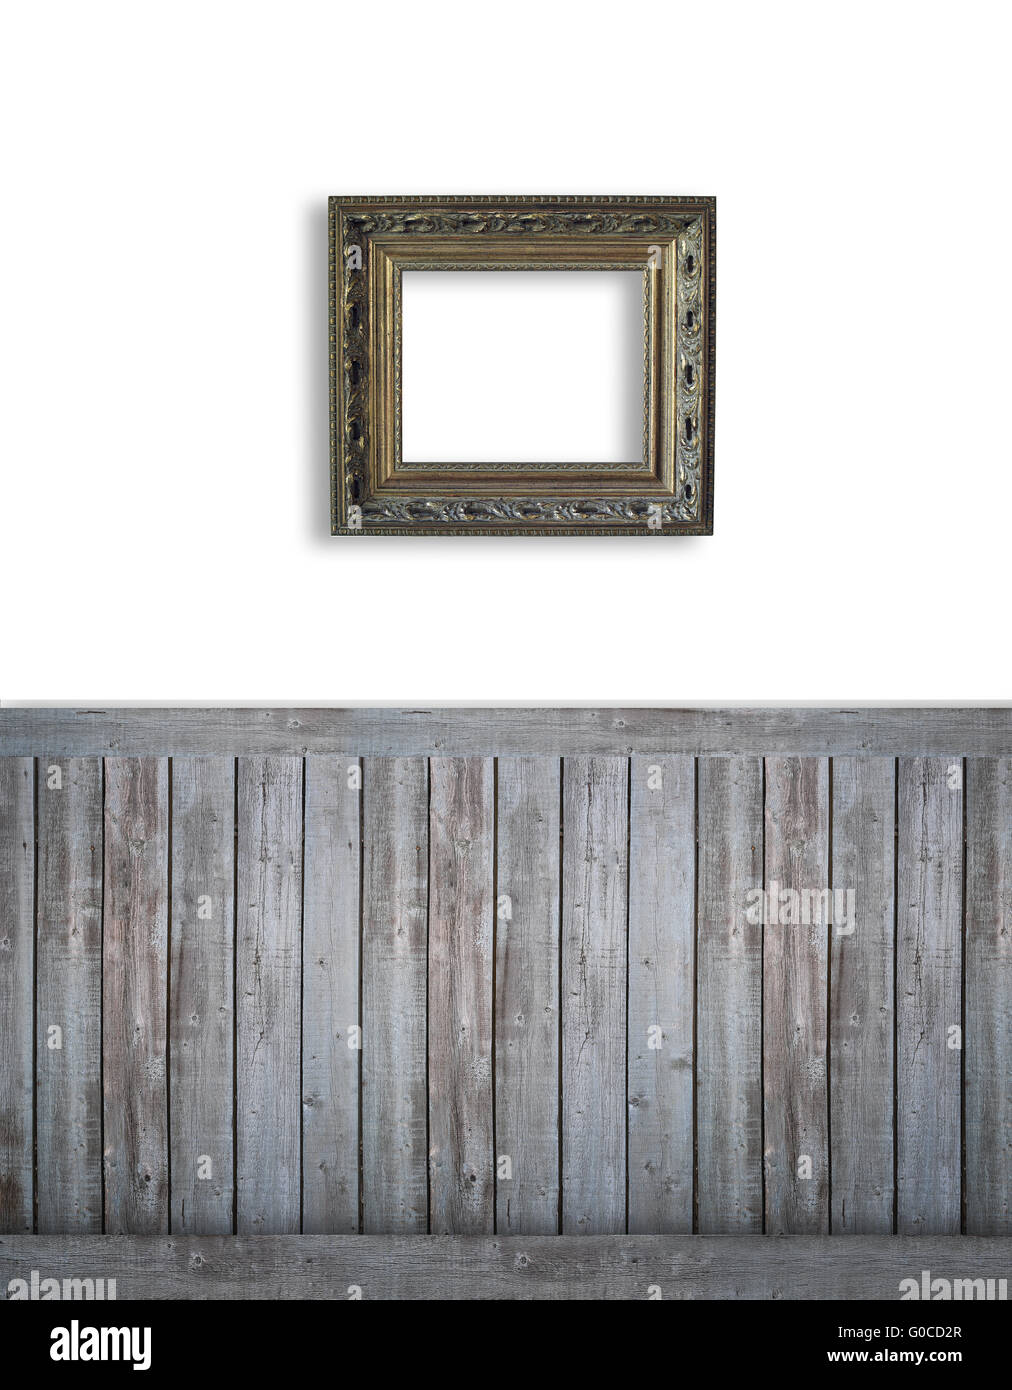 Beadboard Paneling Stock Photos Beadboard Paneling Stock Images